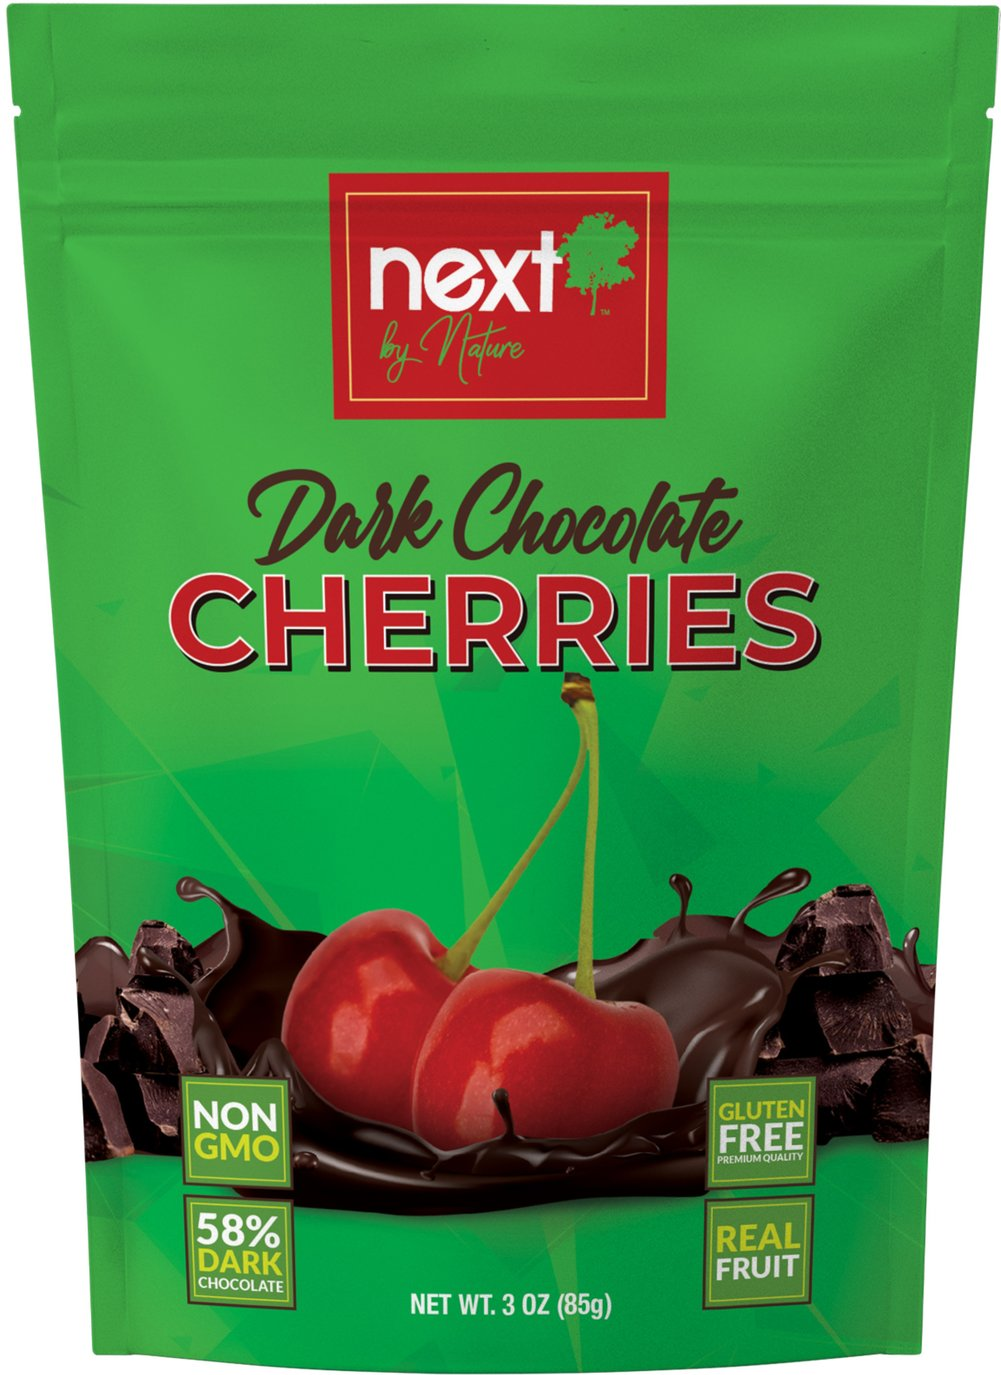 Dark Chocolate Cherries <strong>From the Manufacturer:</strong><br /><br />Uniquely different. What's Next?!<br /><br />With Next by Nature you will taste the organic dried fruits, nuts and snacks coated with dark chocolate the way it was meant to be, the Next way.<br /><br />True cherries, true dark chocolate, truly delicious. 3 oz Bag  $5.99